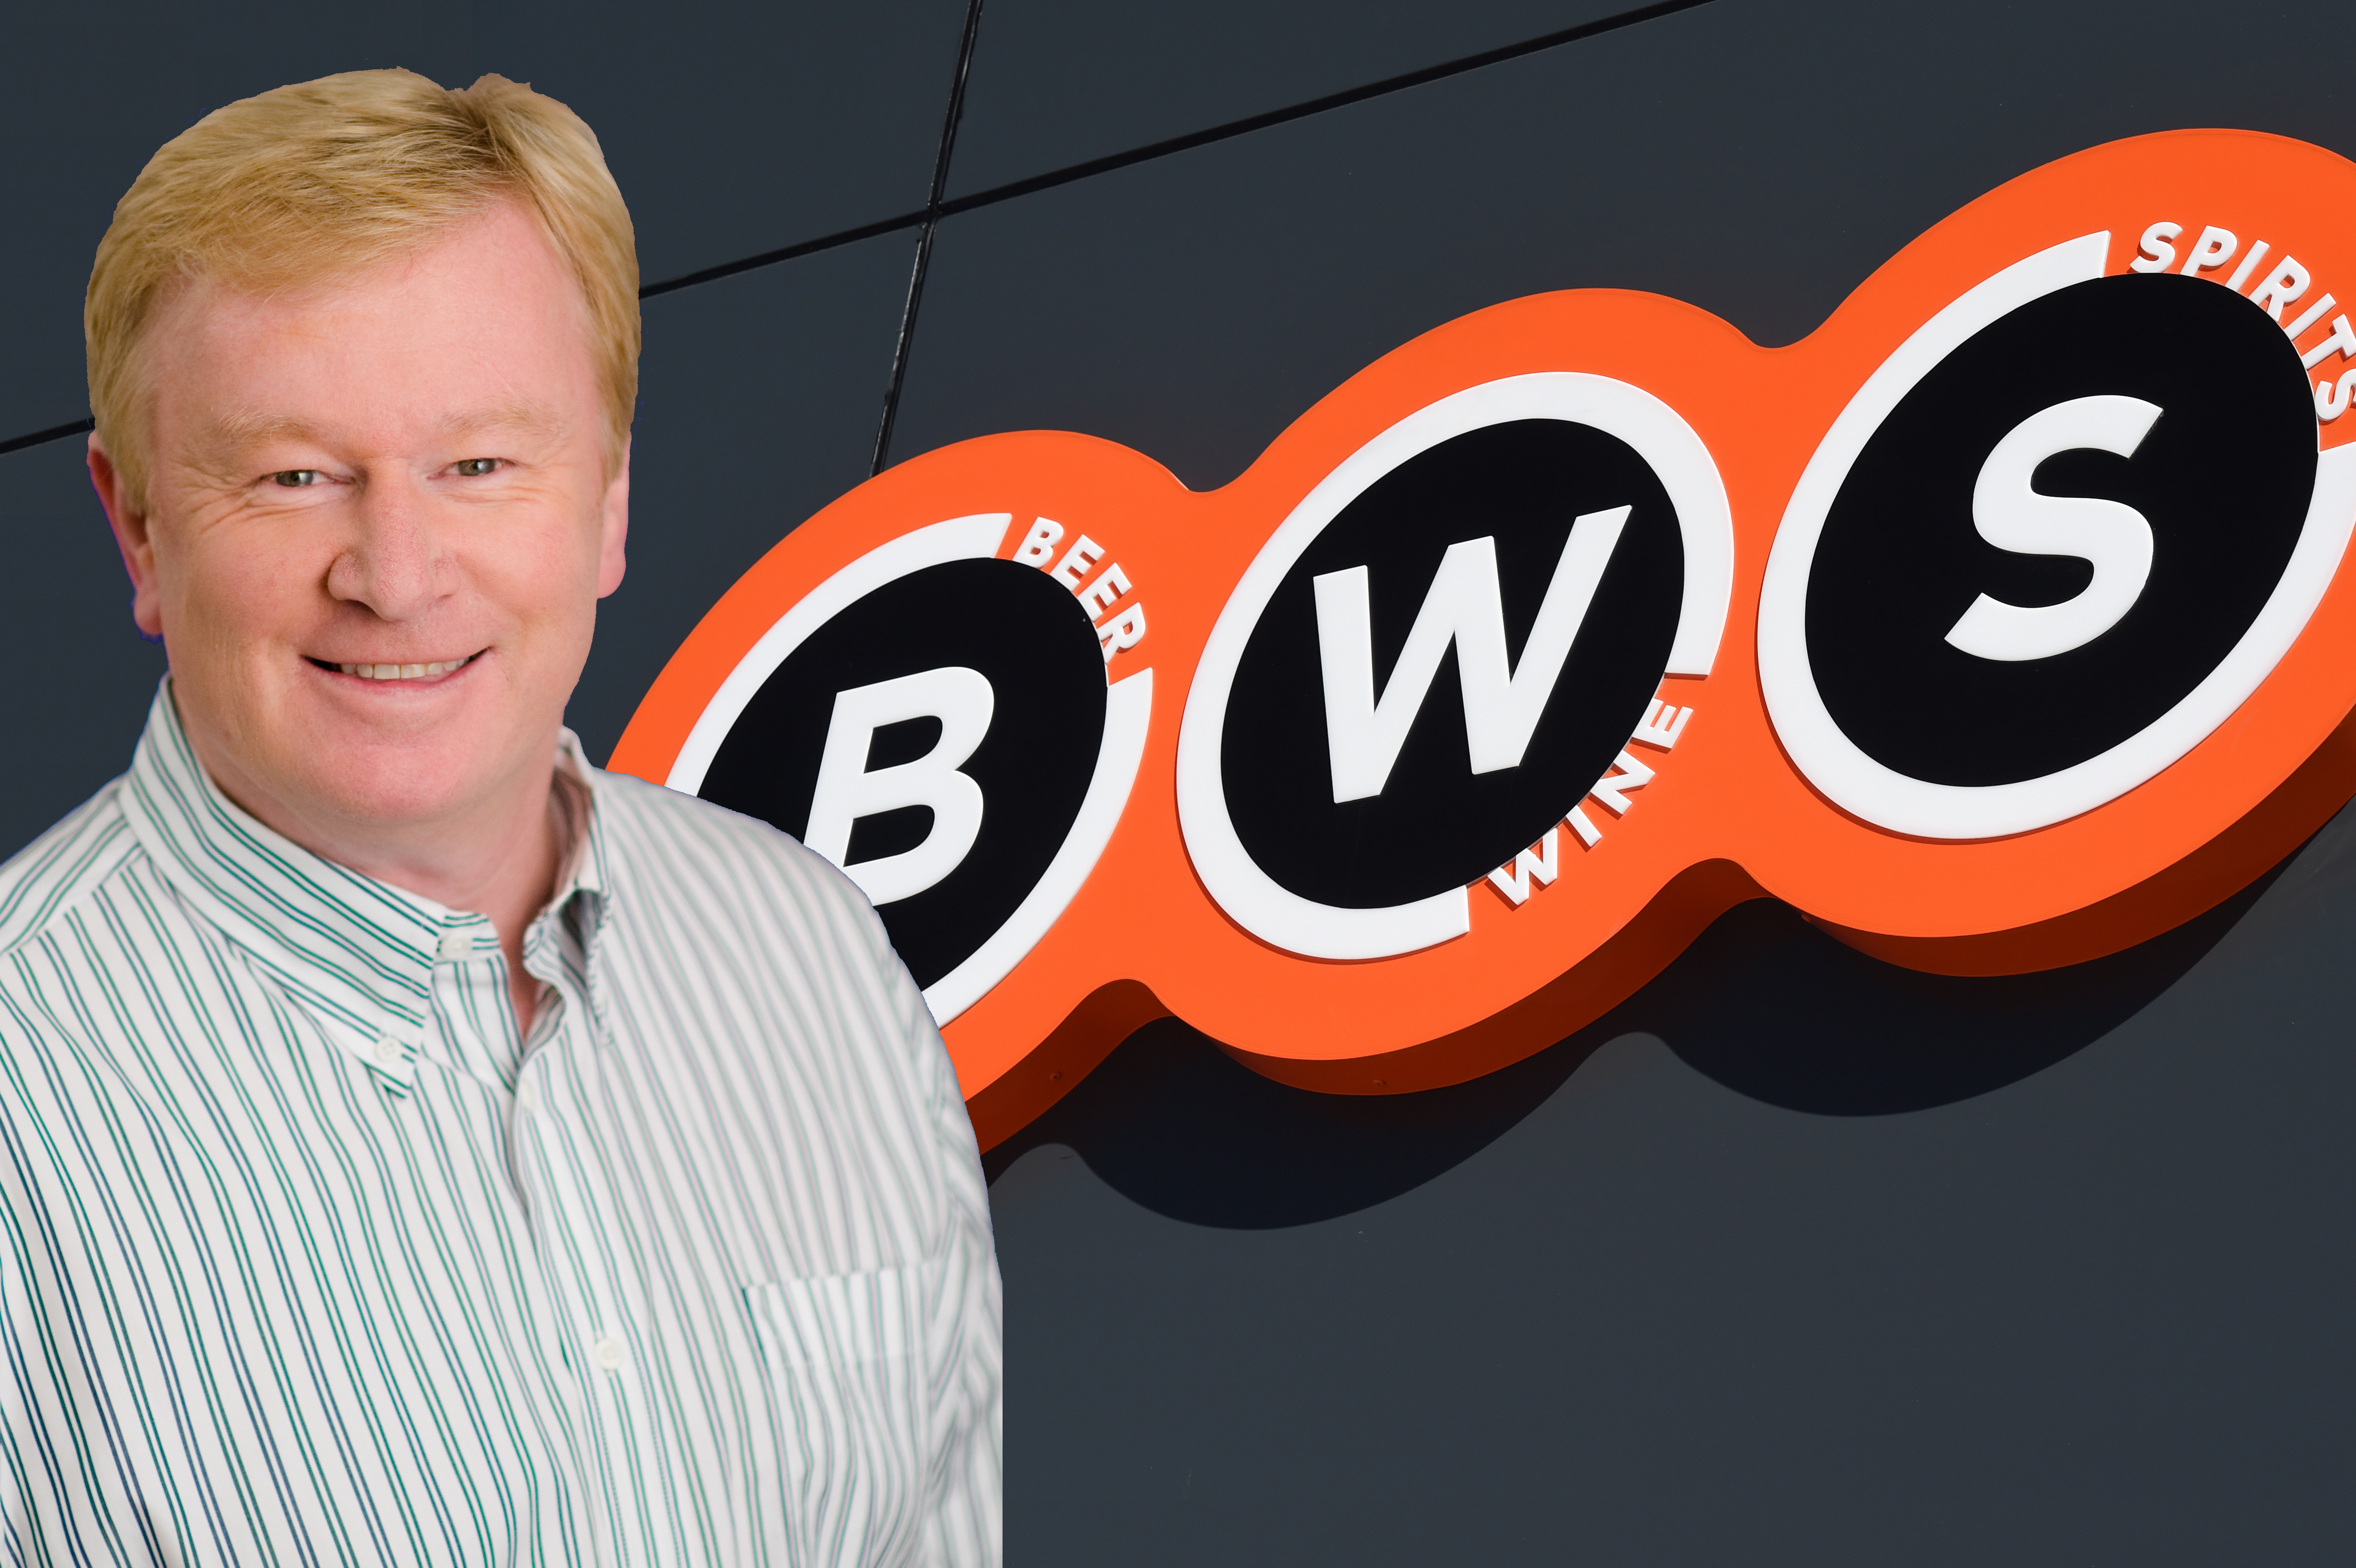 Article image for Denis Walter says the partnership between BWS and Dry July 'just seems wrong'